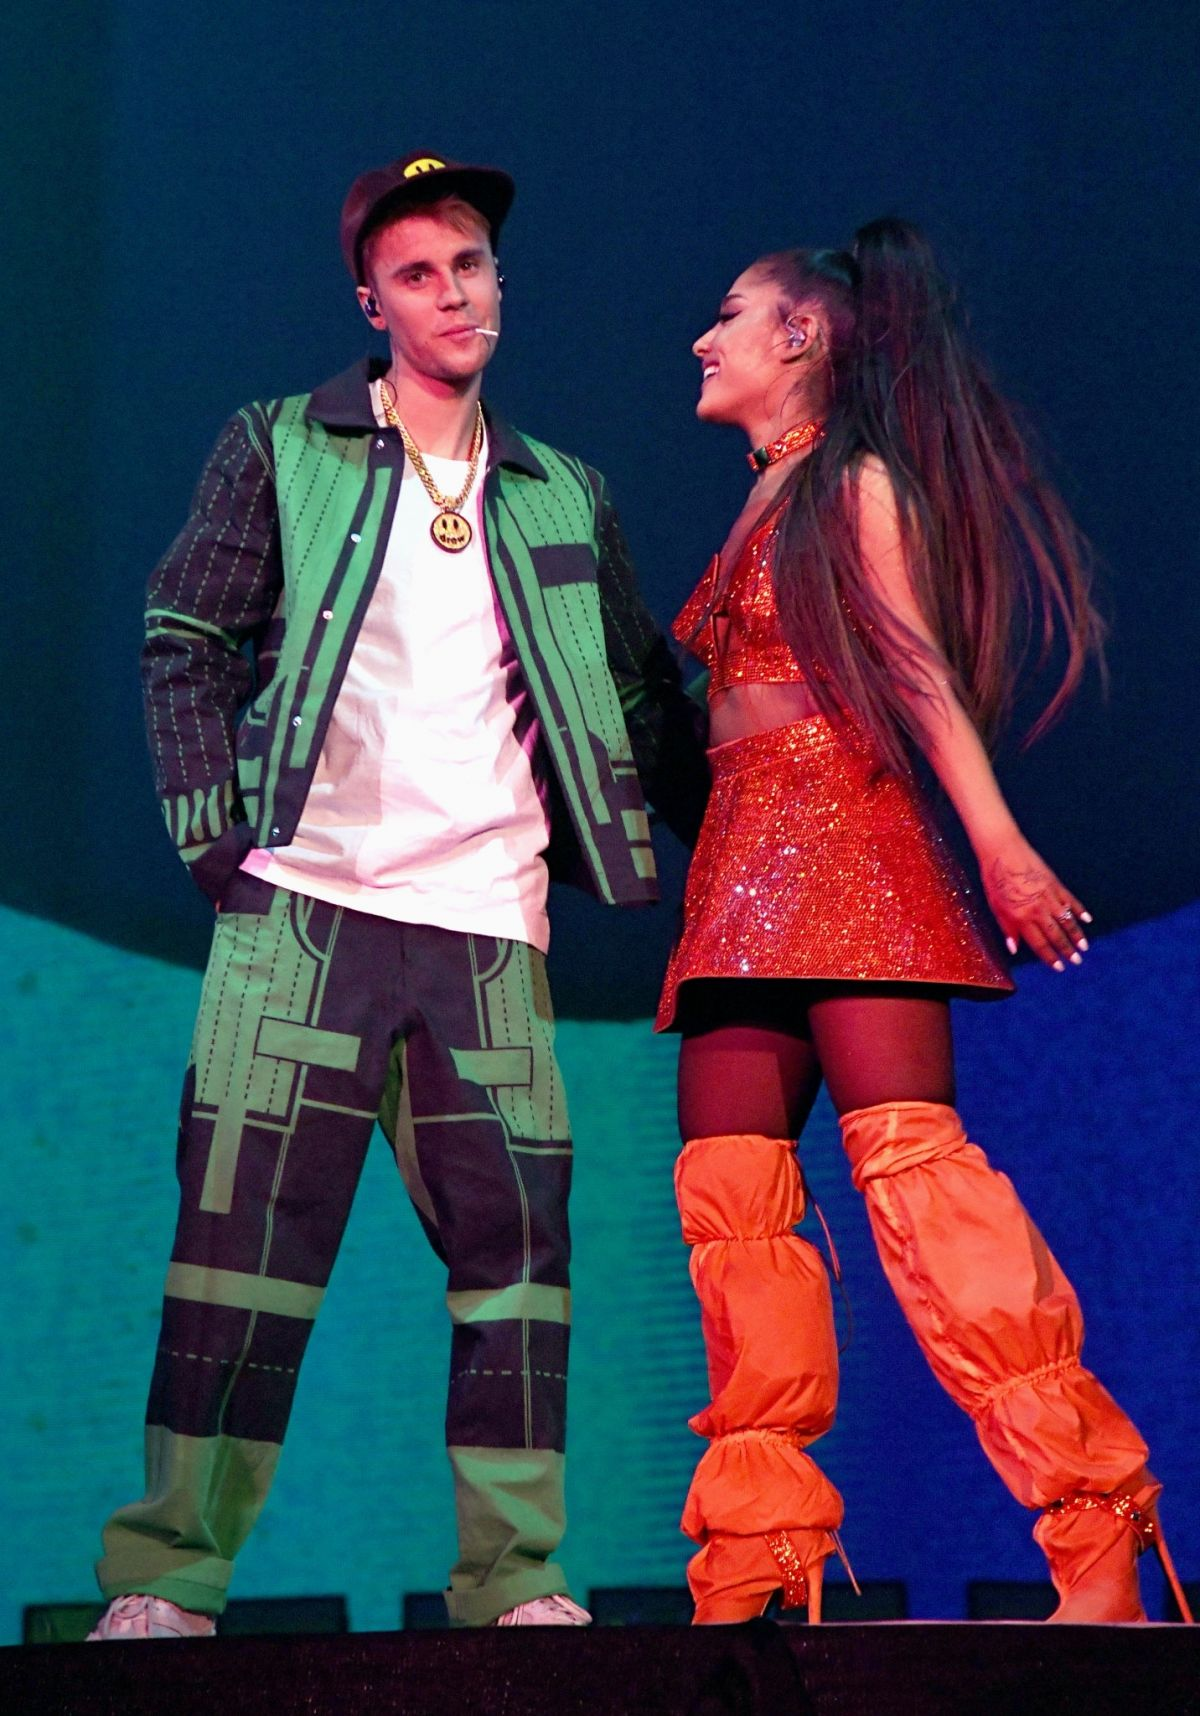 ARIANA GRANDE and Justin Bieber Performs at Coachella ...